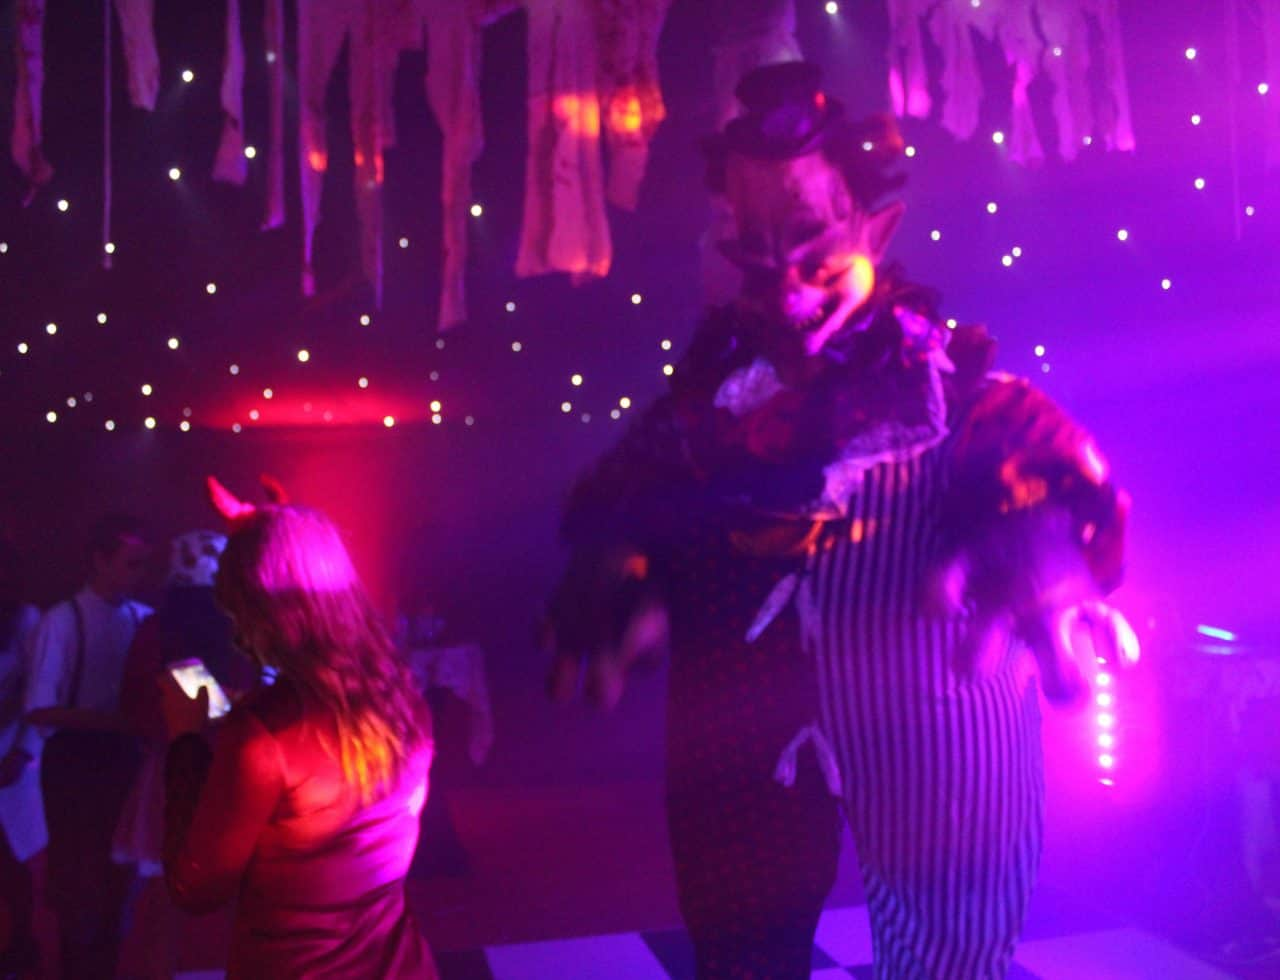 Bespoke Halloween Entertainment we hired for our Halloween birthday party.